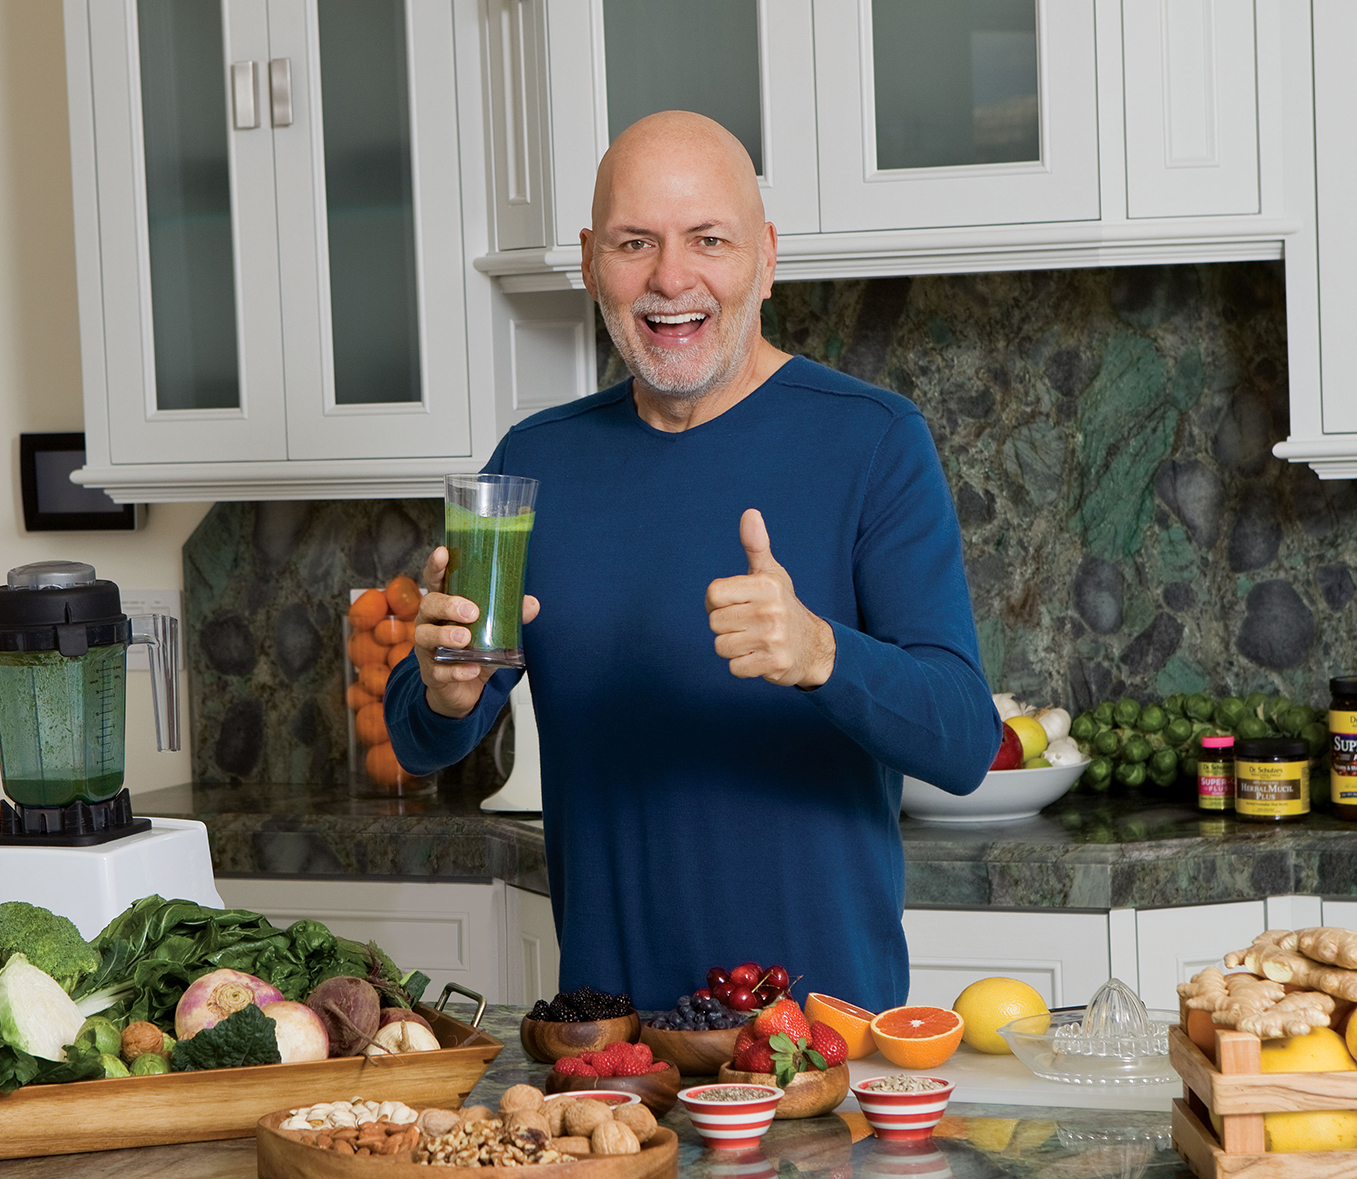 Dr Schulze making Superfood Plus